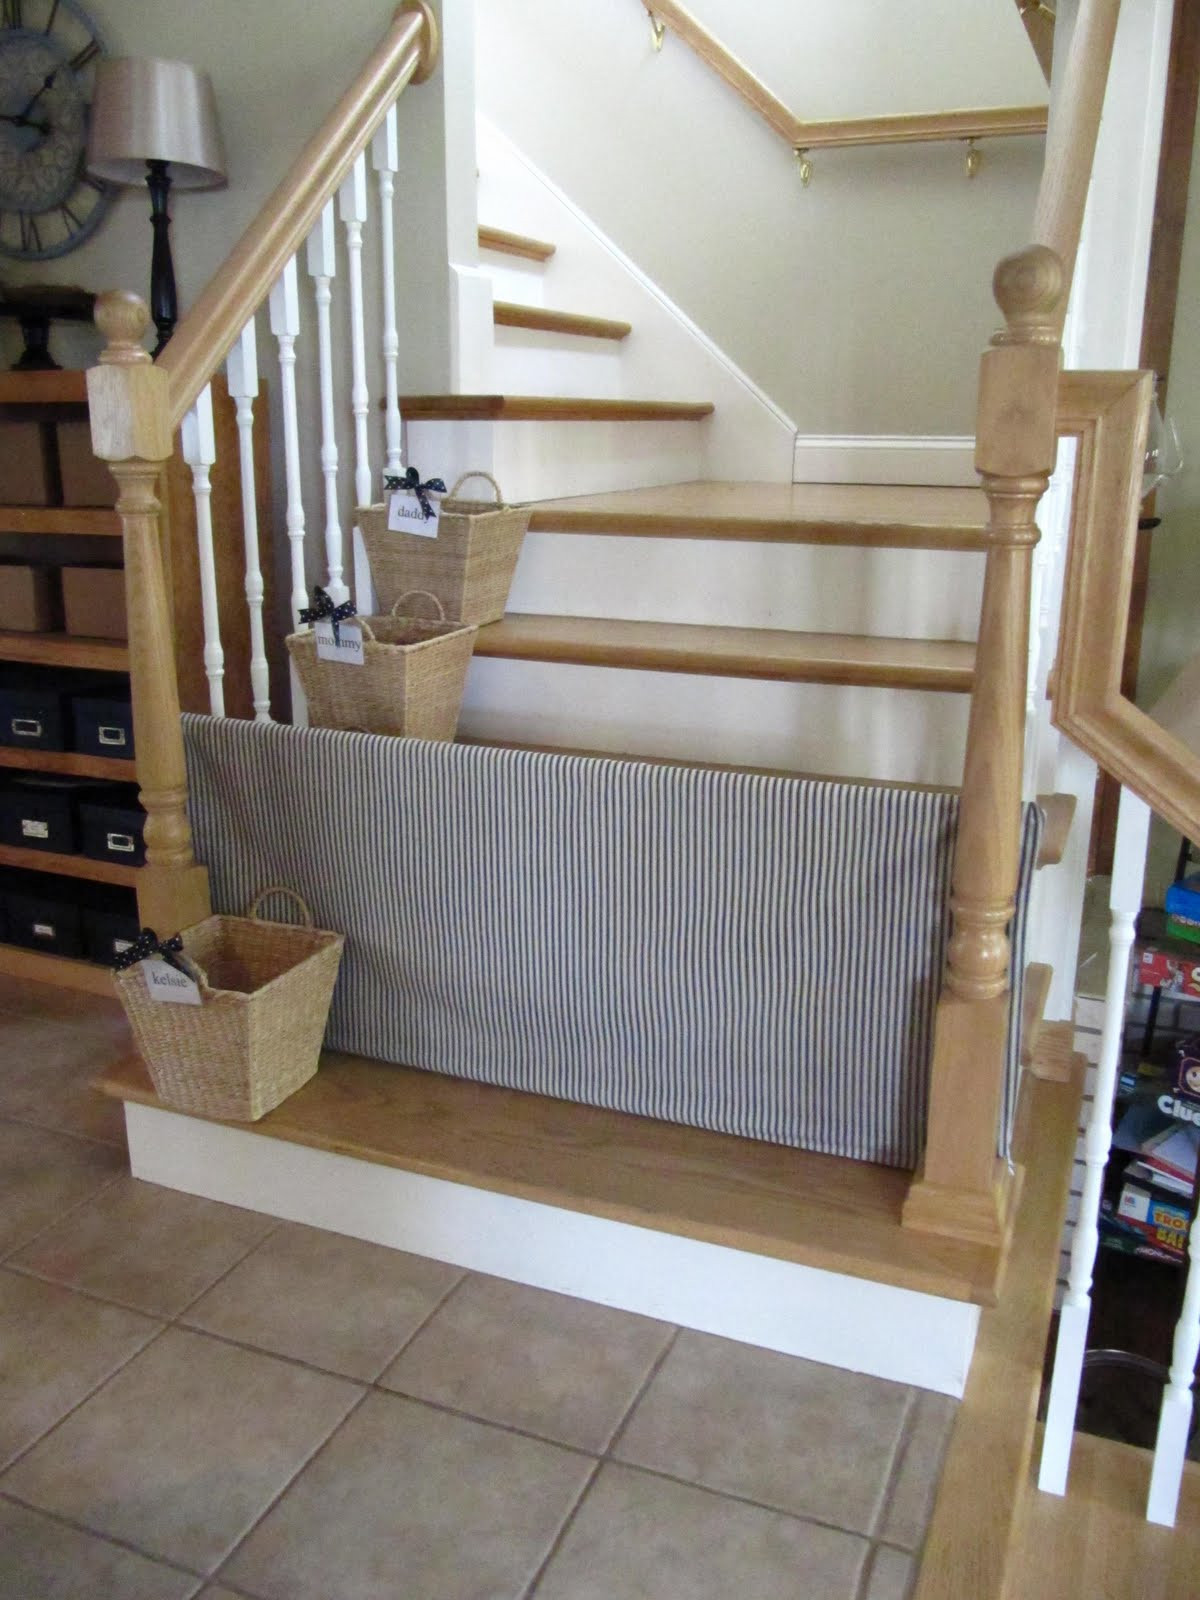 Best ideas about Baby Gates DIY . Save or Pin 10 DIY Baby Gates for Stairs Now.